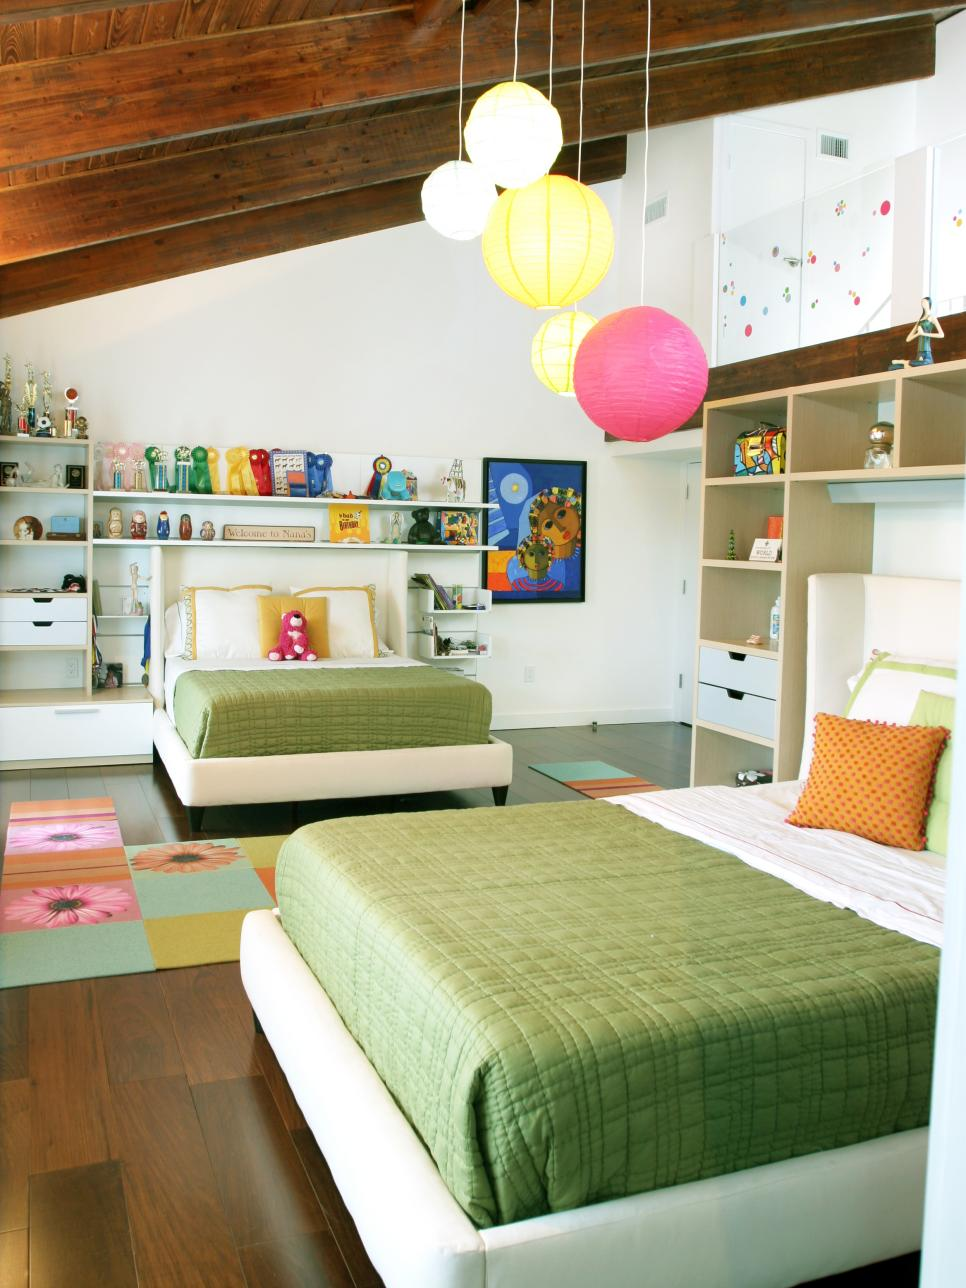 lighting ideas for your kids room hgtv 16987 | 1405486881303